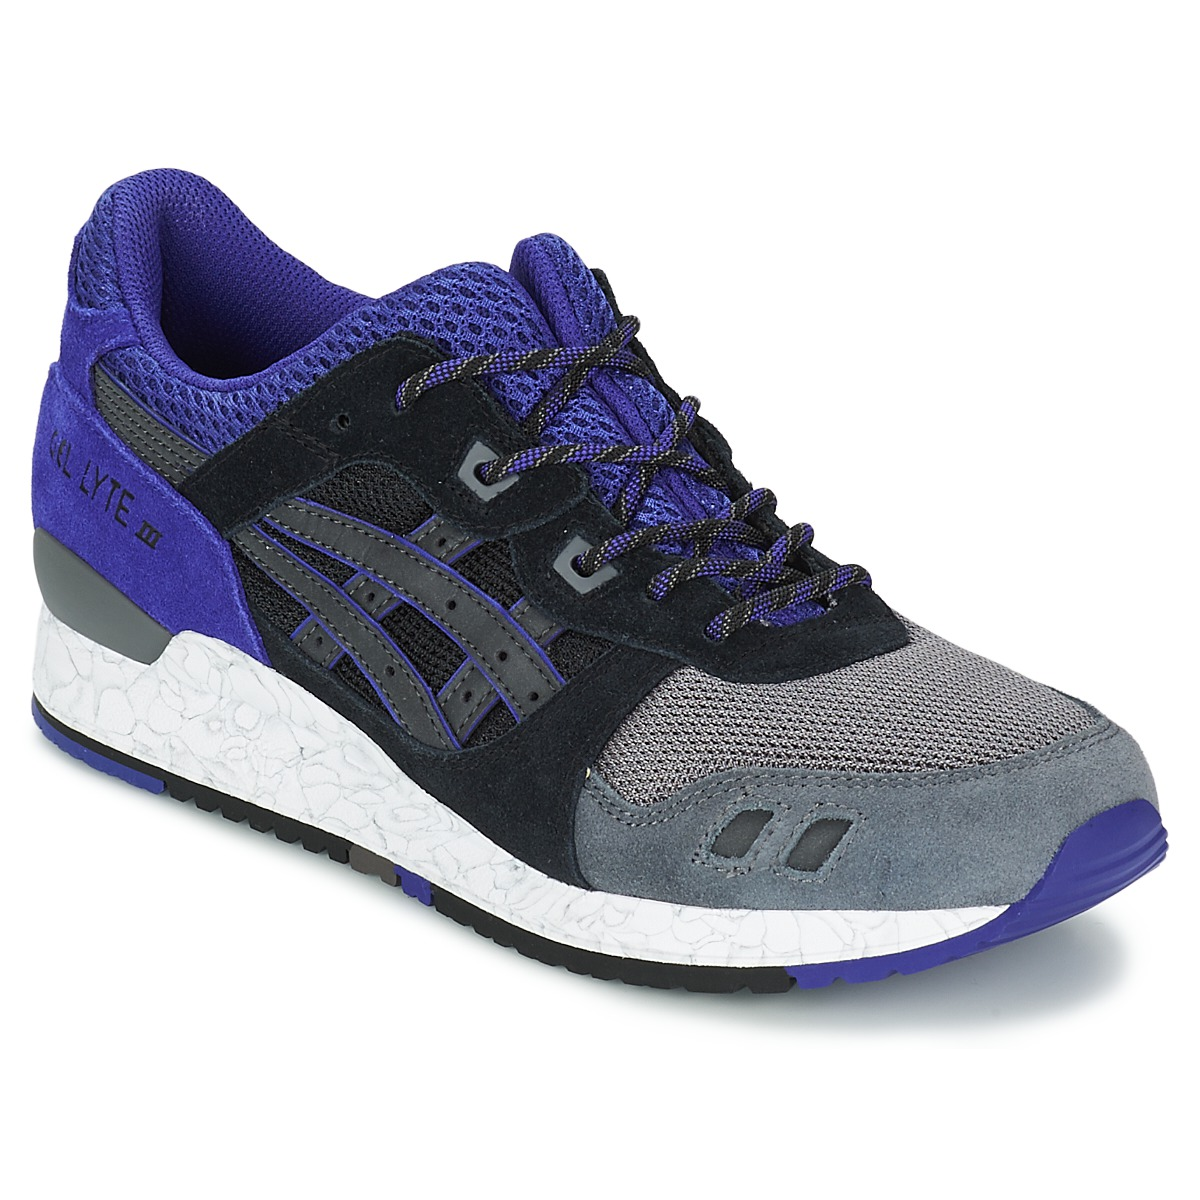 Asics GEL-LYTE III Black / Blue